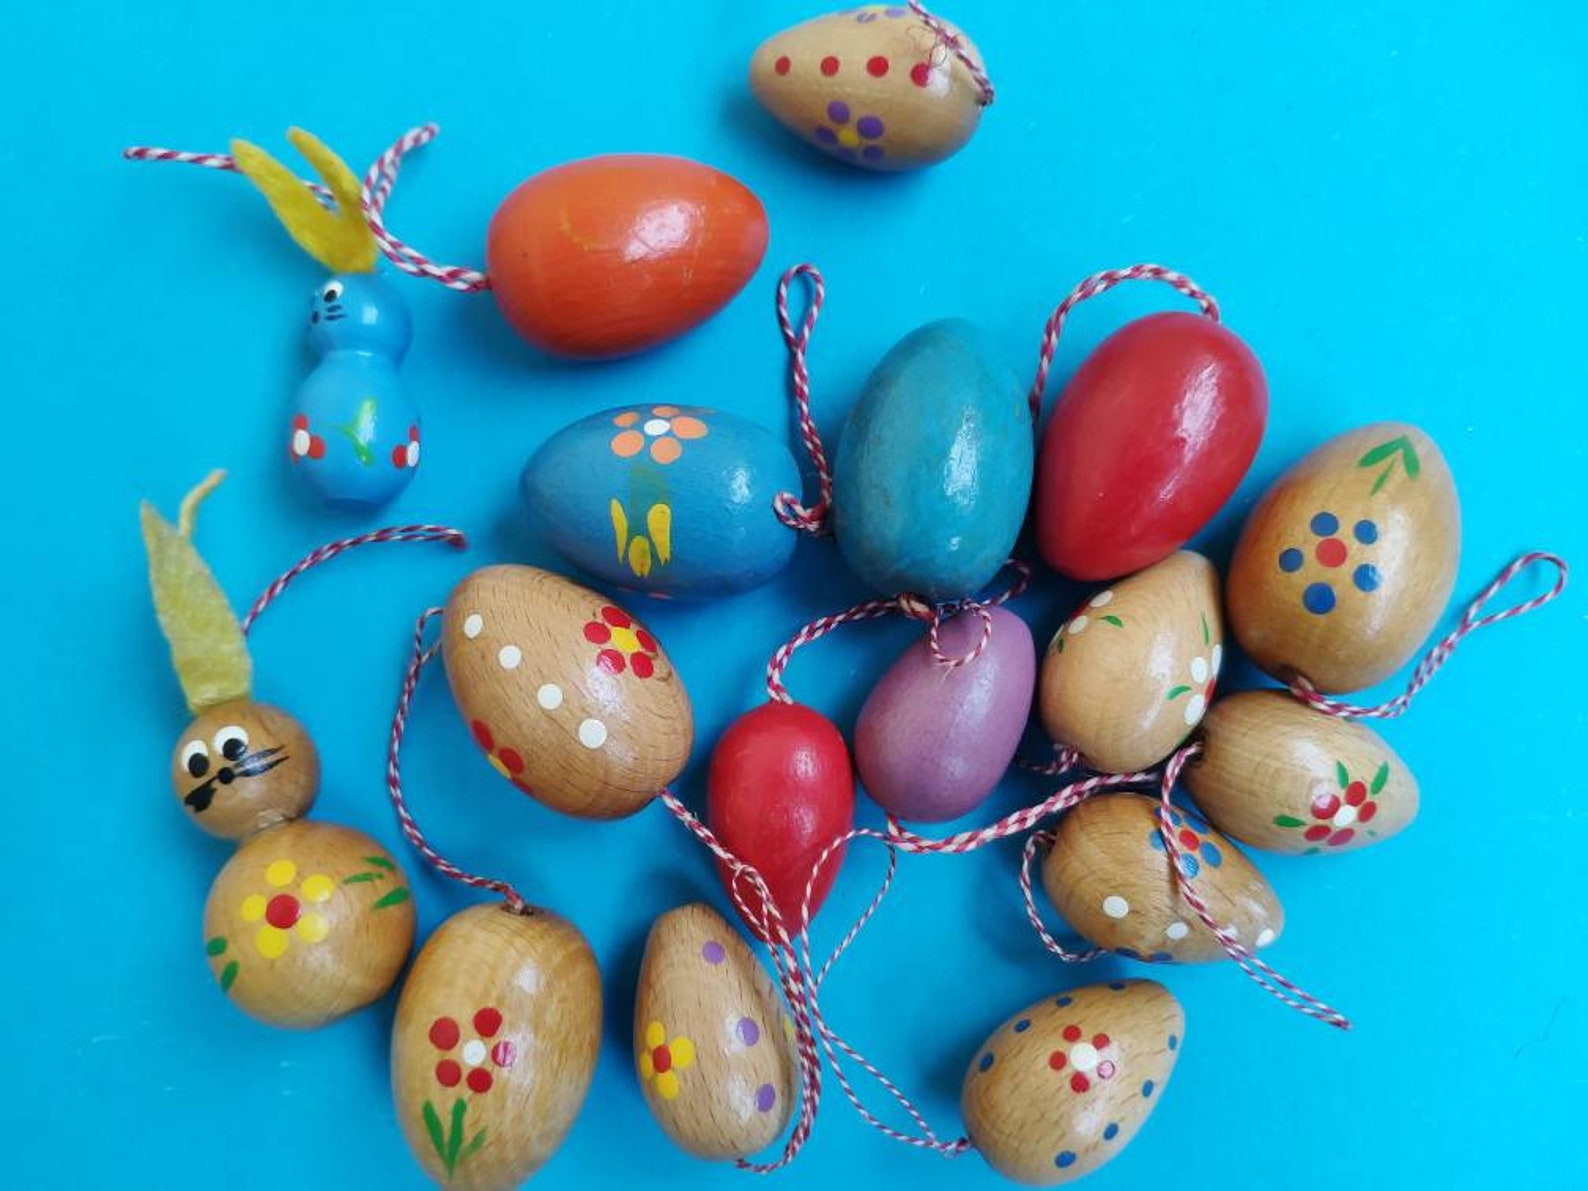 Lot of 17 vintage German wooden miniatures, hanging decorations, Hand painted Easter bunny, eggs ornaments